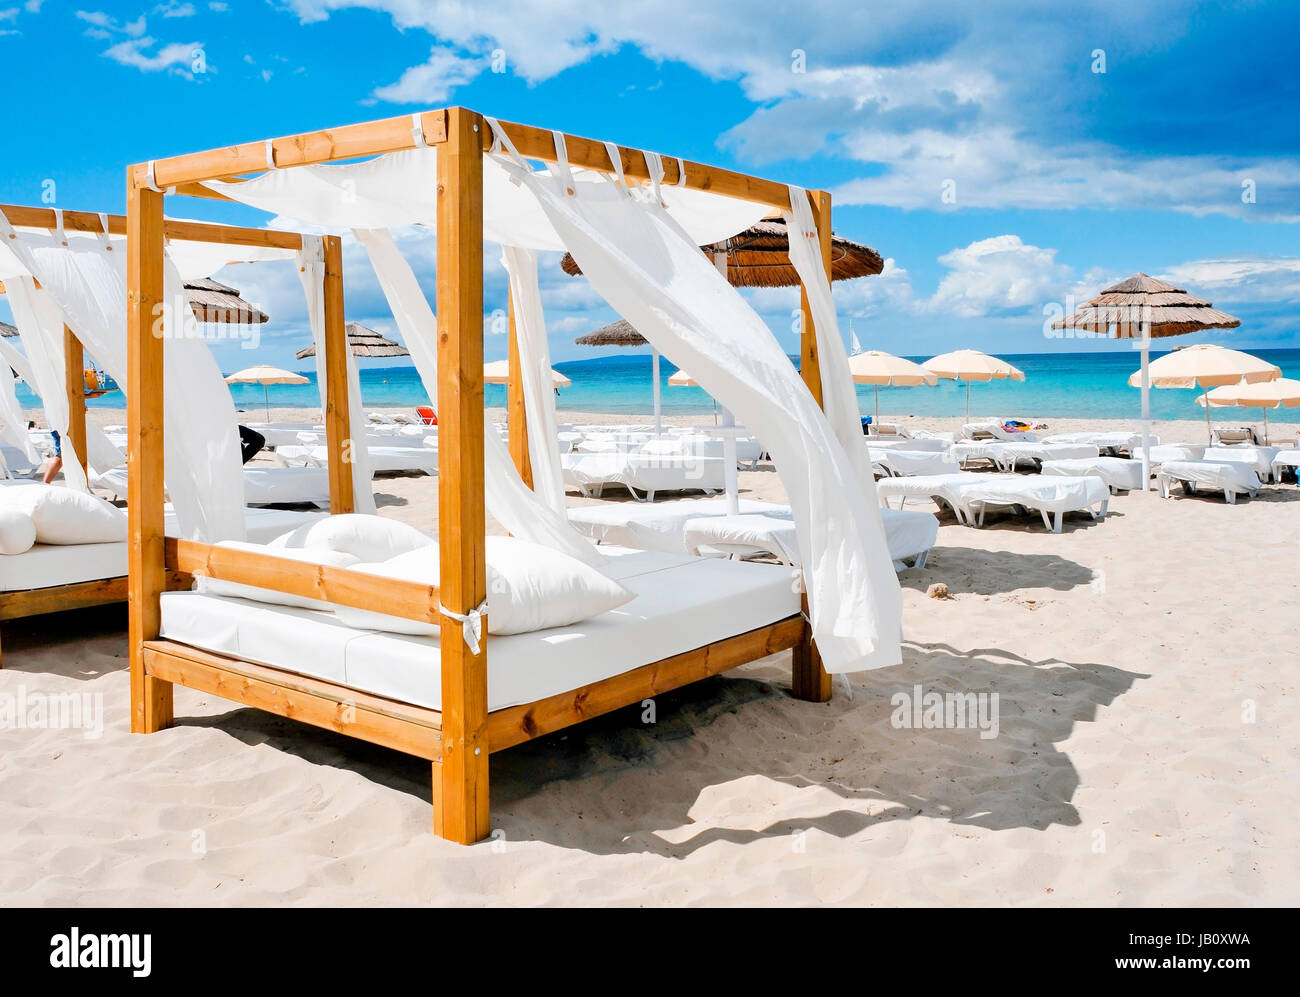 view of some beds in a beach club in a white sand beach in Ibiza, Spain - Stock Image